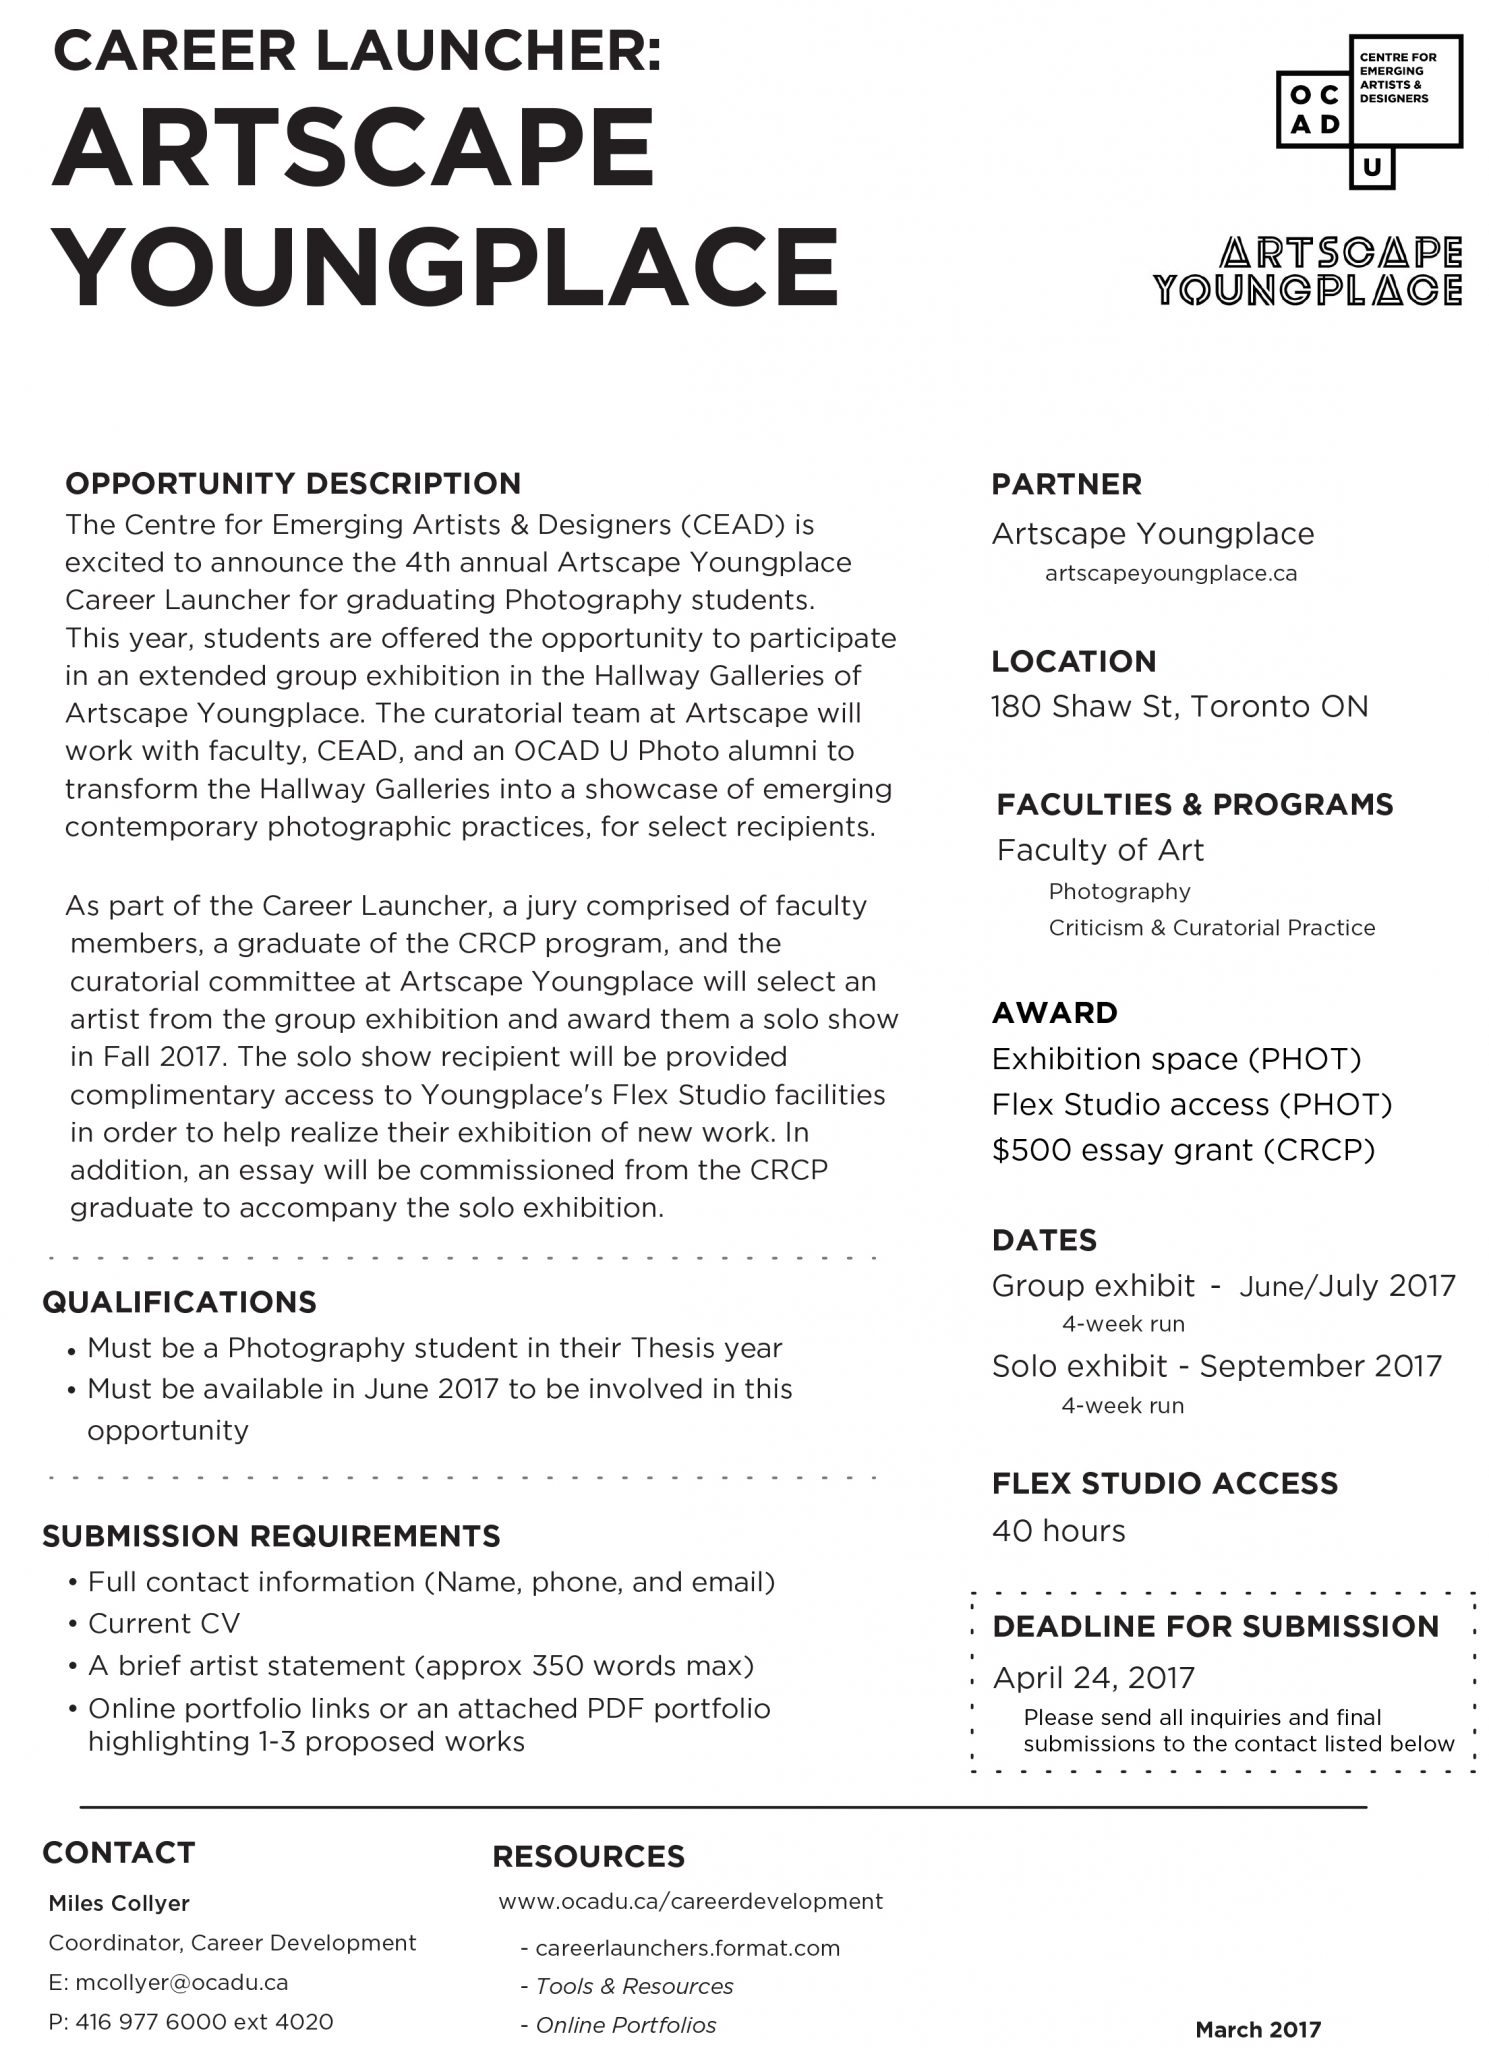 artscape_youngplace_career_launcher_2017-phot